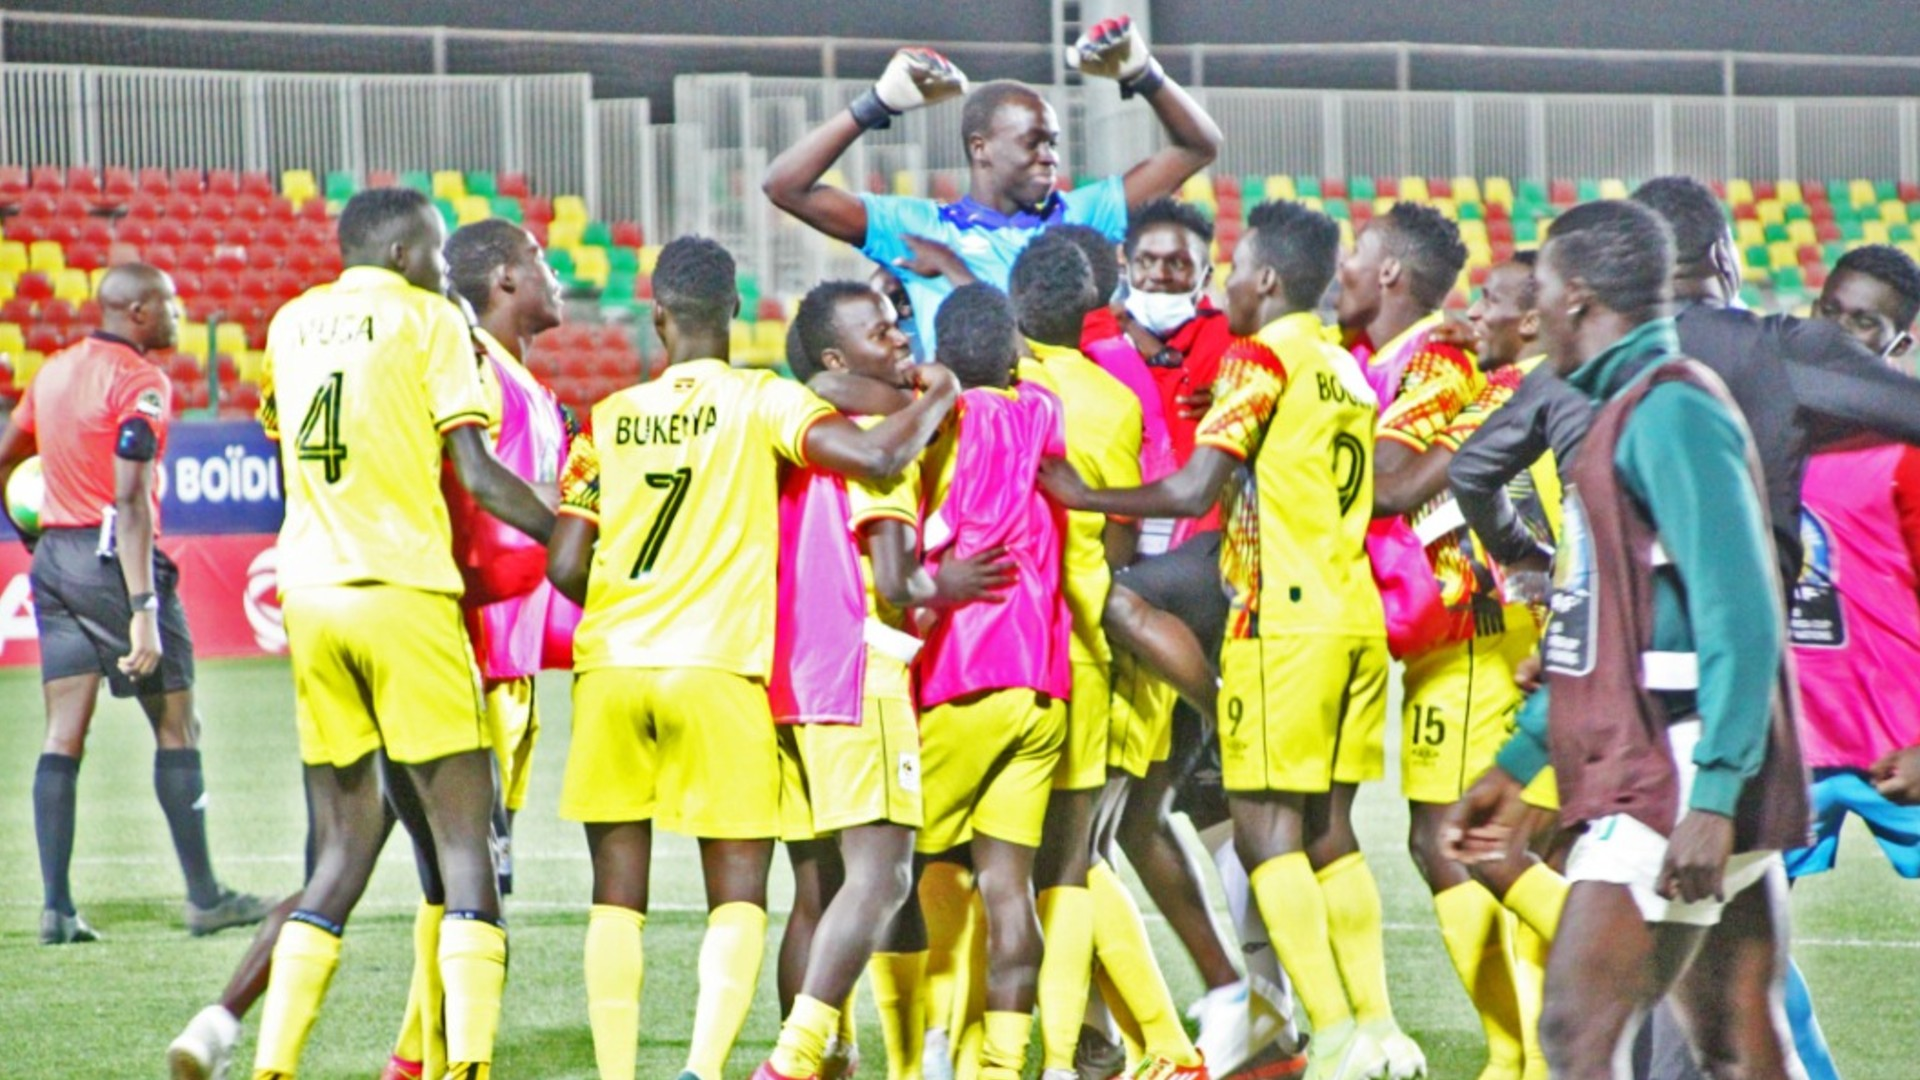 U20 Afcon Wrap: Uganda and Ghana enter semis after wins over Burkina Faso and Cameroon